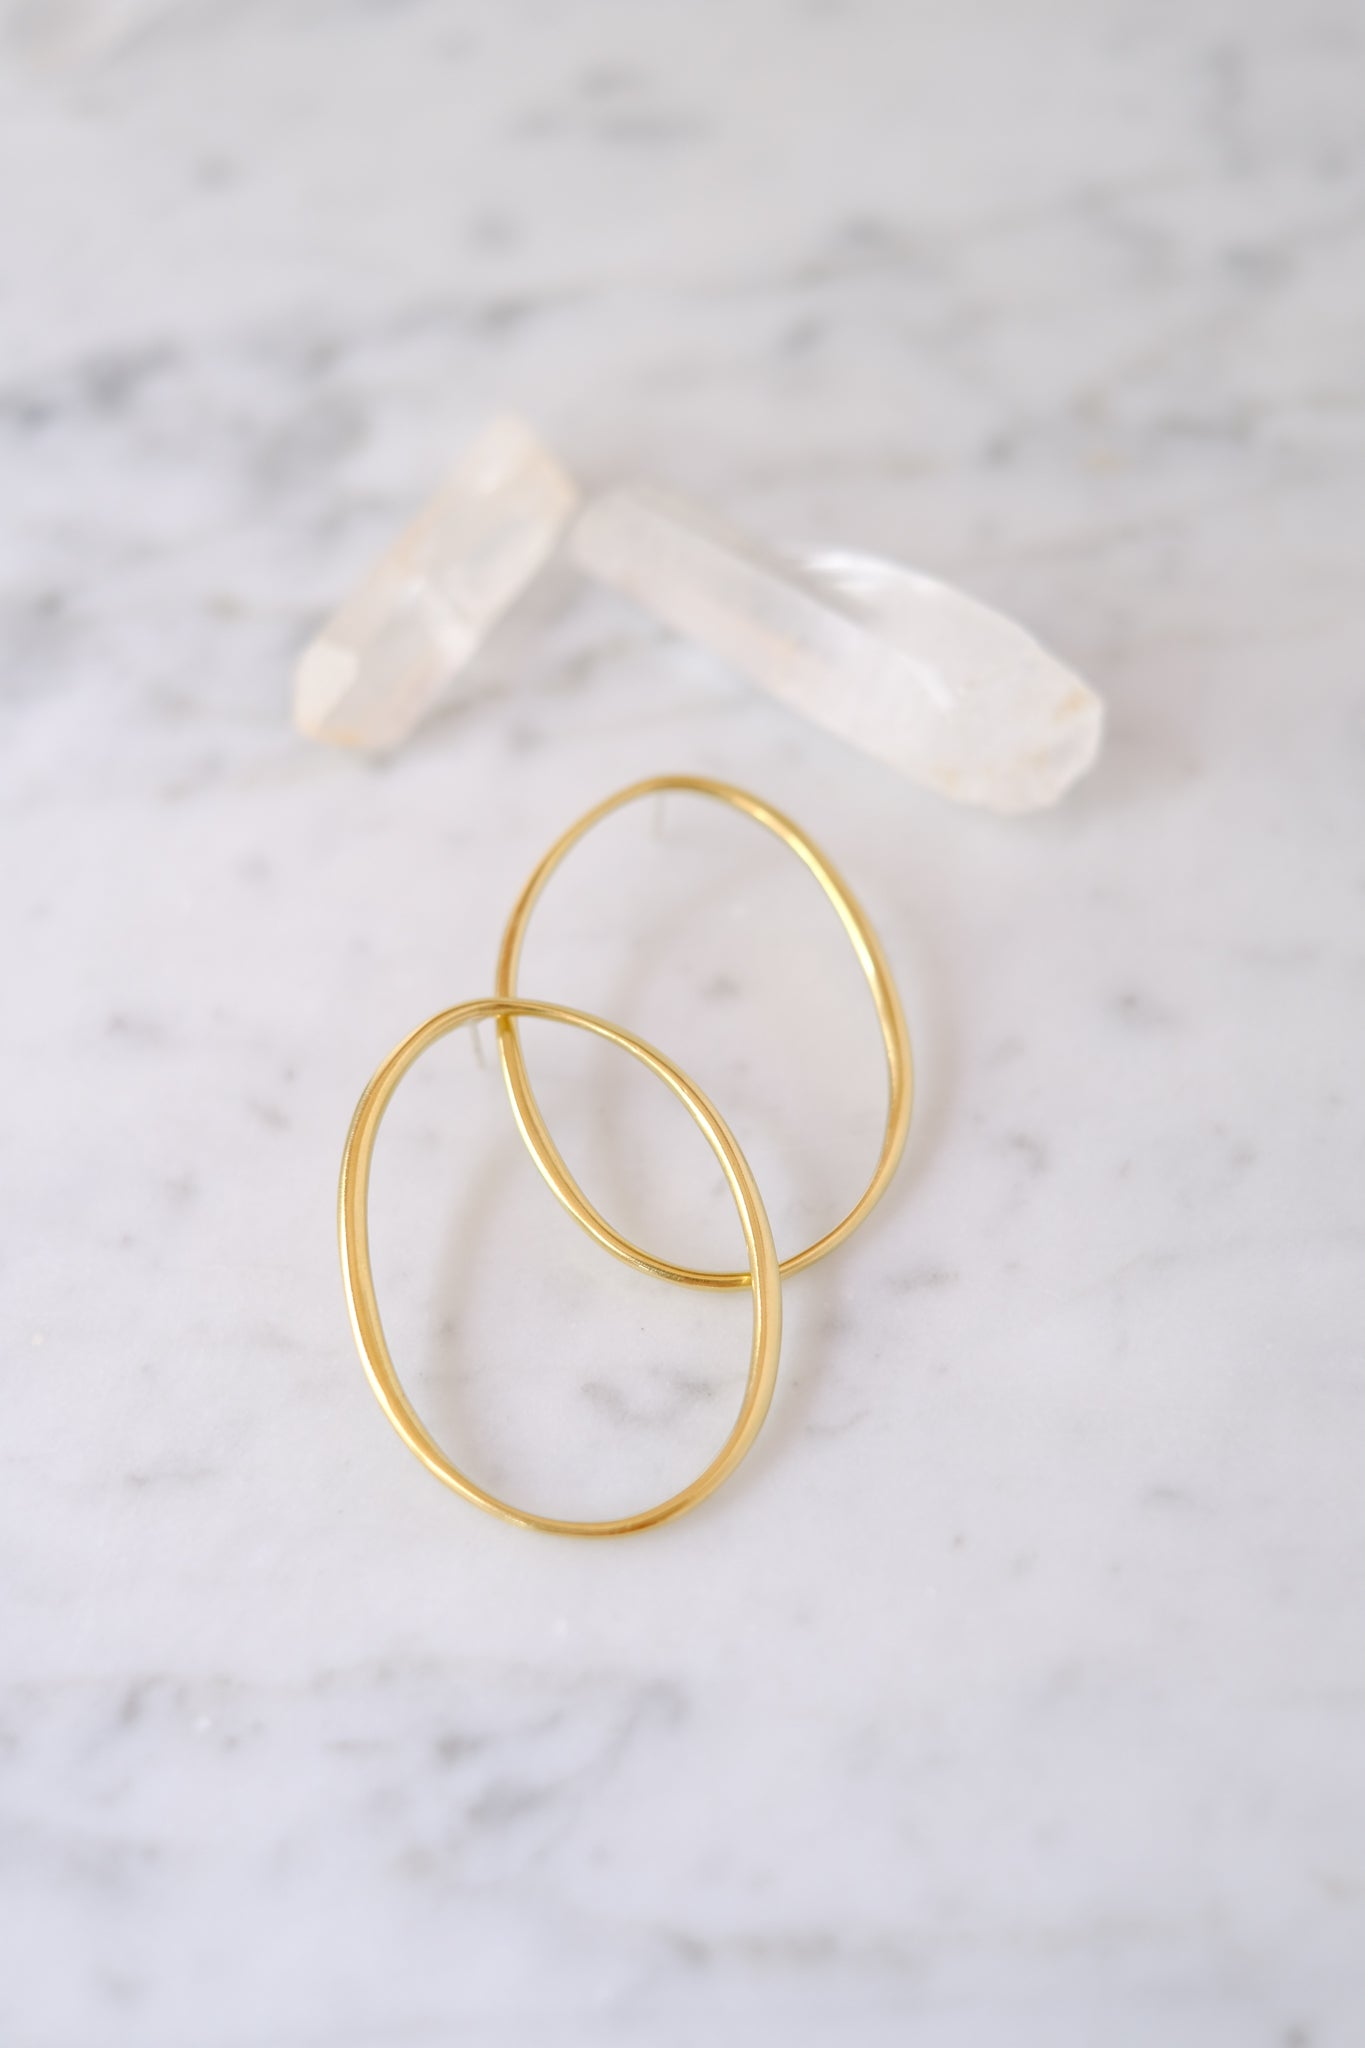 K/ller :: Earrings, Large Elipse Suds, Brass